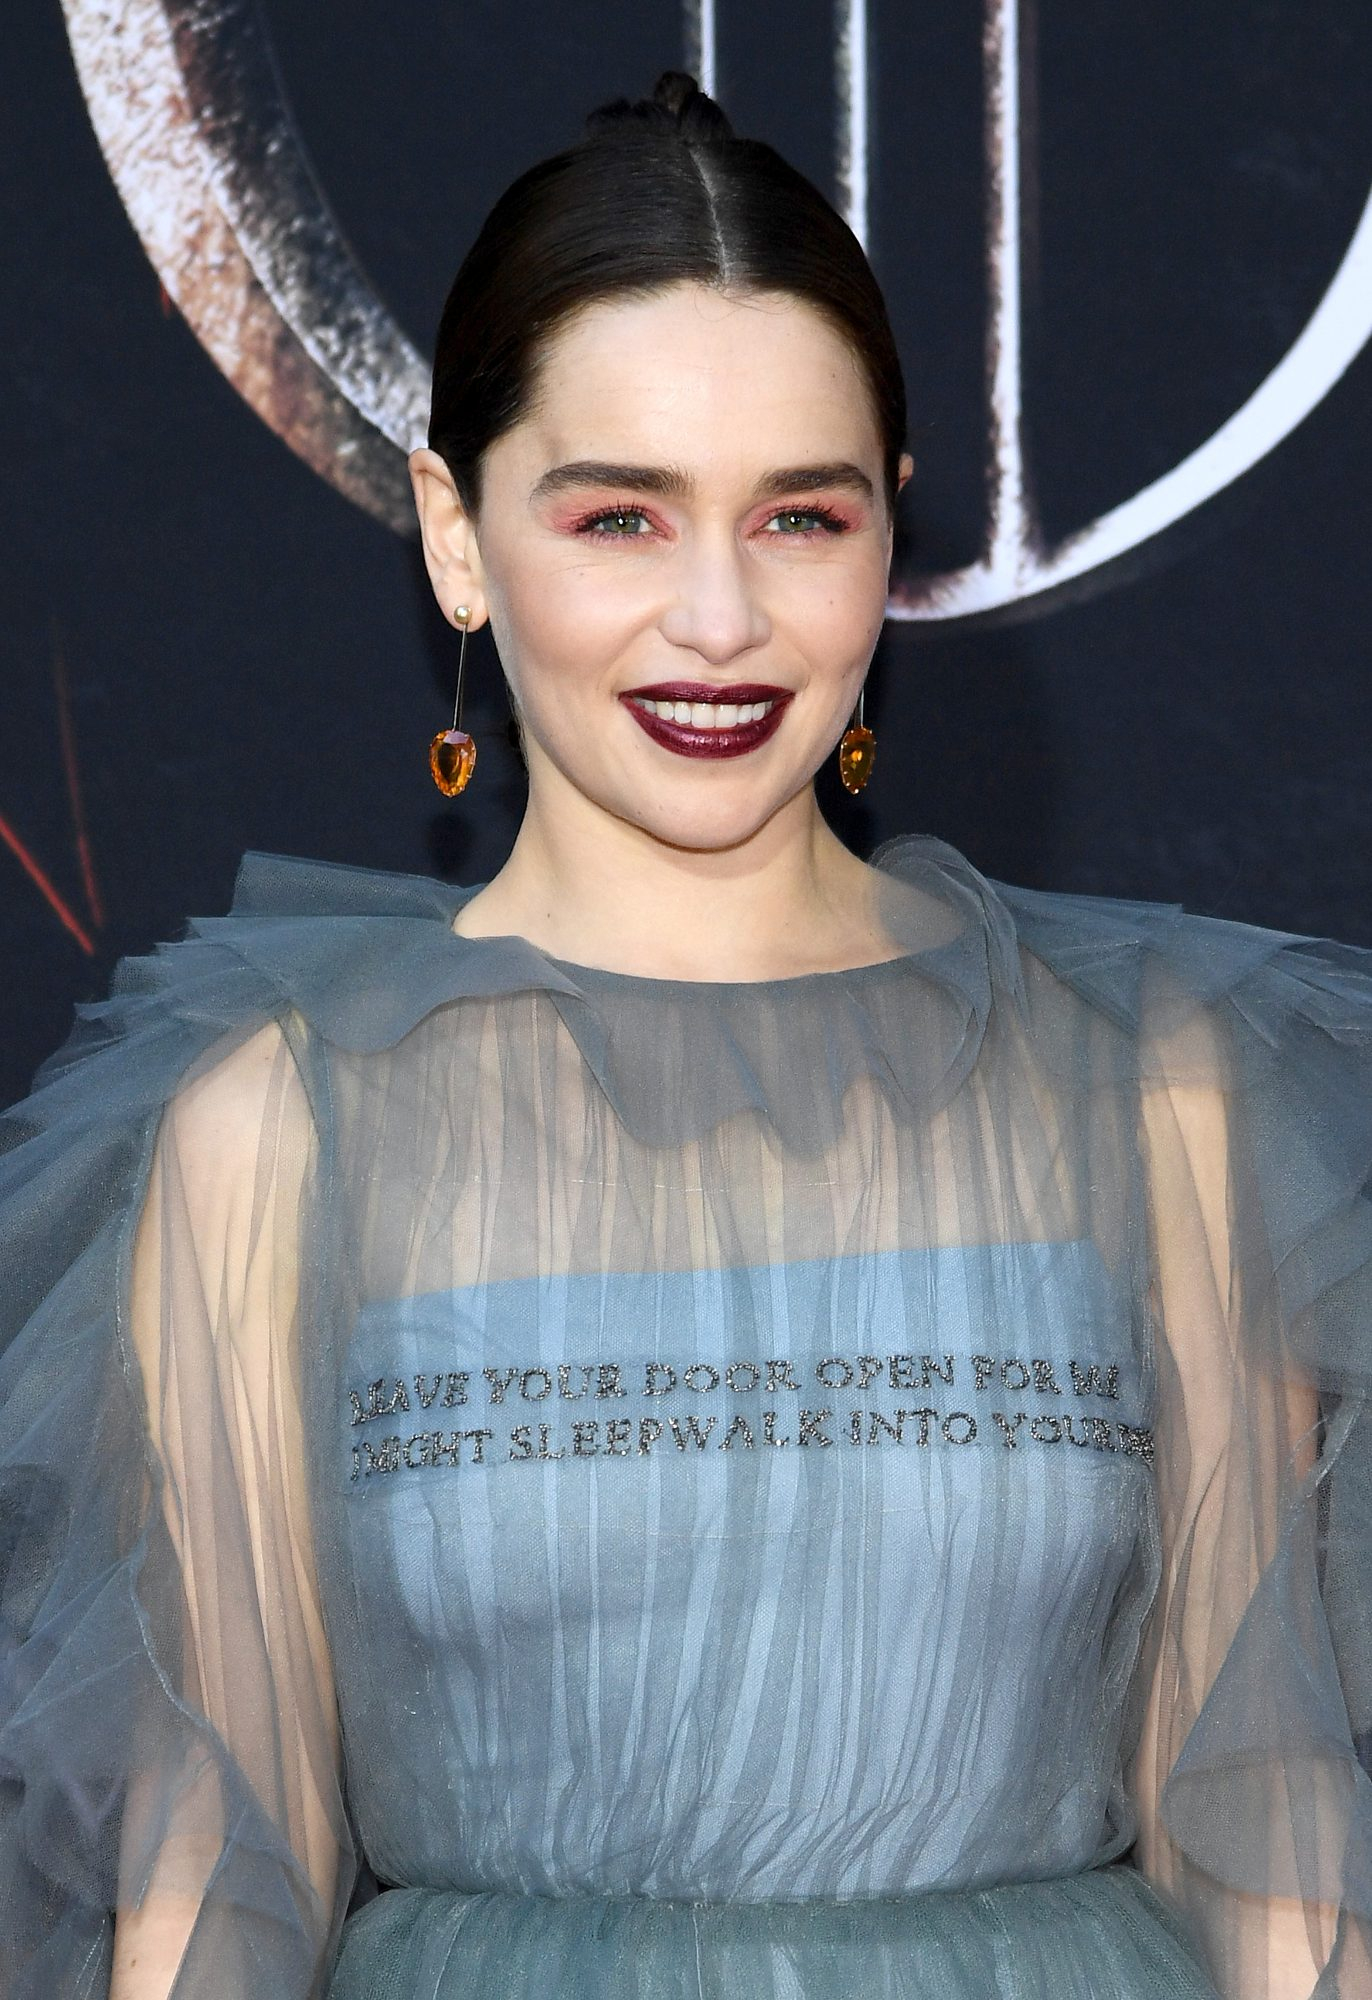 """NEW YORK, NEW YORK - APRIL 03: Emilia Clarke attends the """"Game Of Thrones"""" Season 8 Premiere on April 03, 2019 in New York City. (Photo by Dimitrios Kambouris/Getty Images)"""